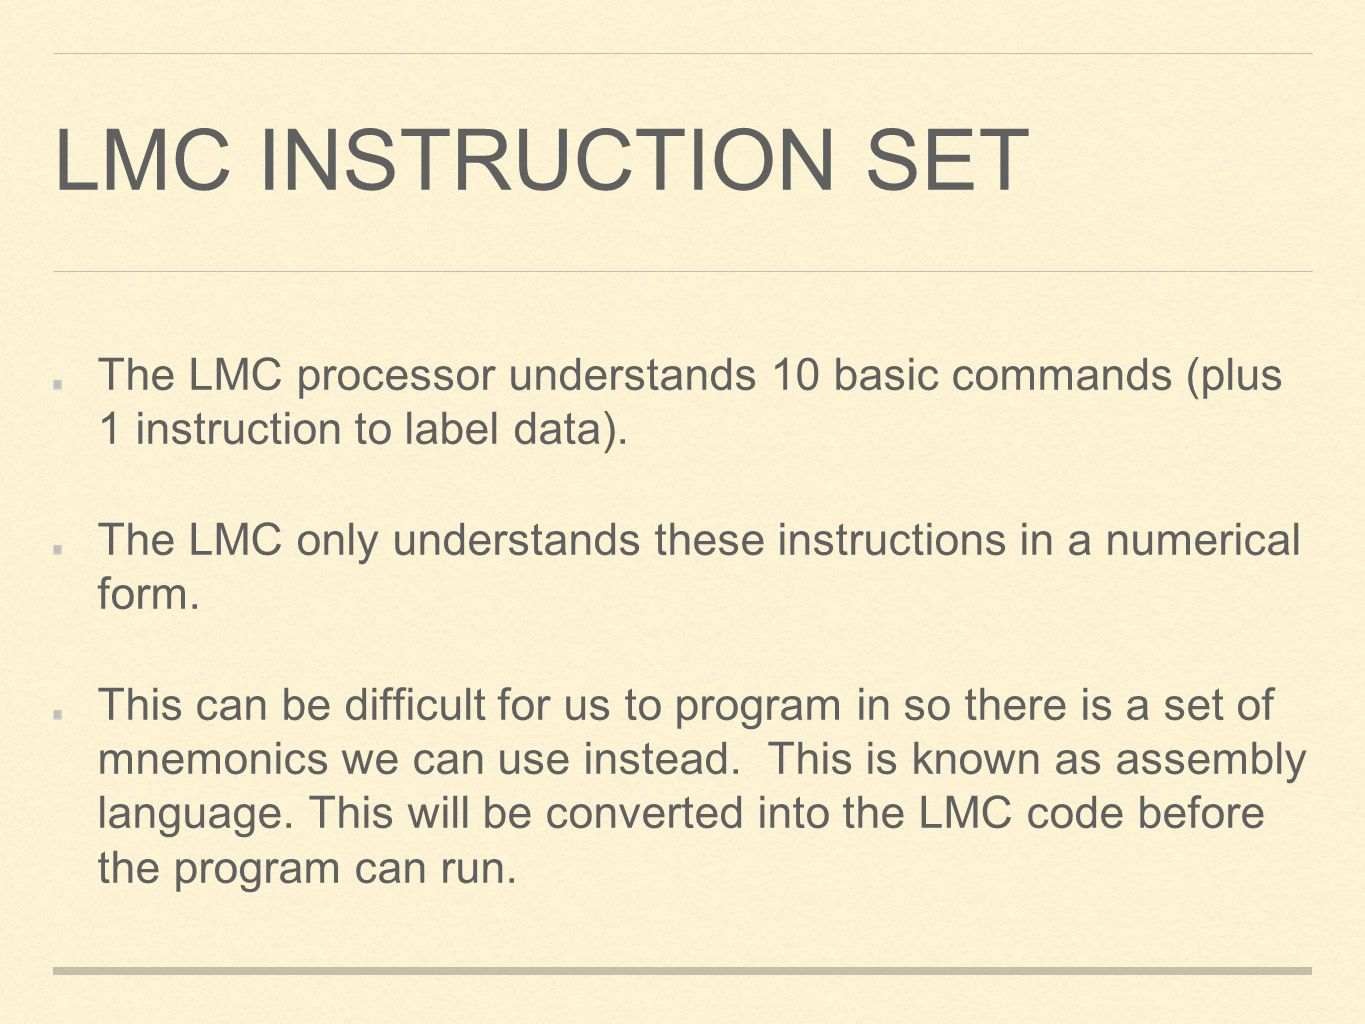 LMC Instruction set The LMC processor understands 10 basic commands (plus 1 instruction to label data).